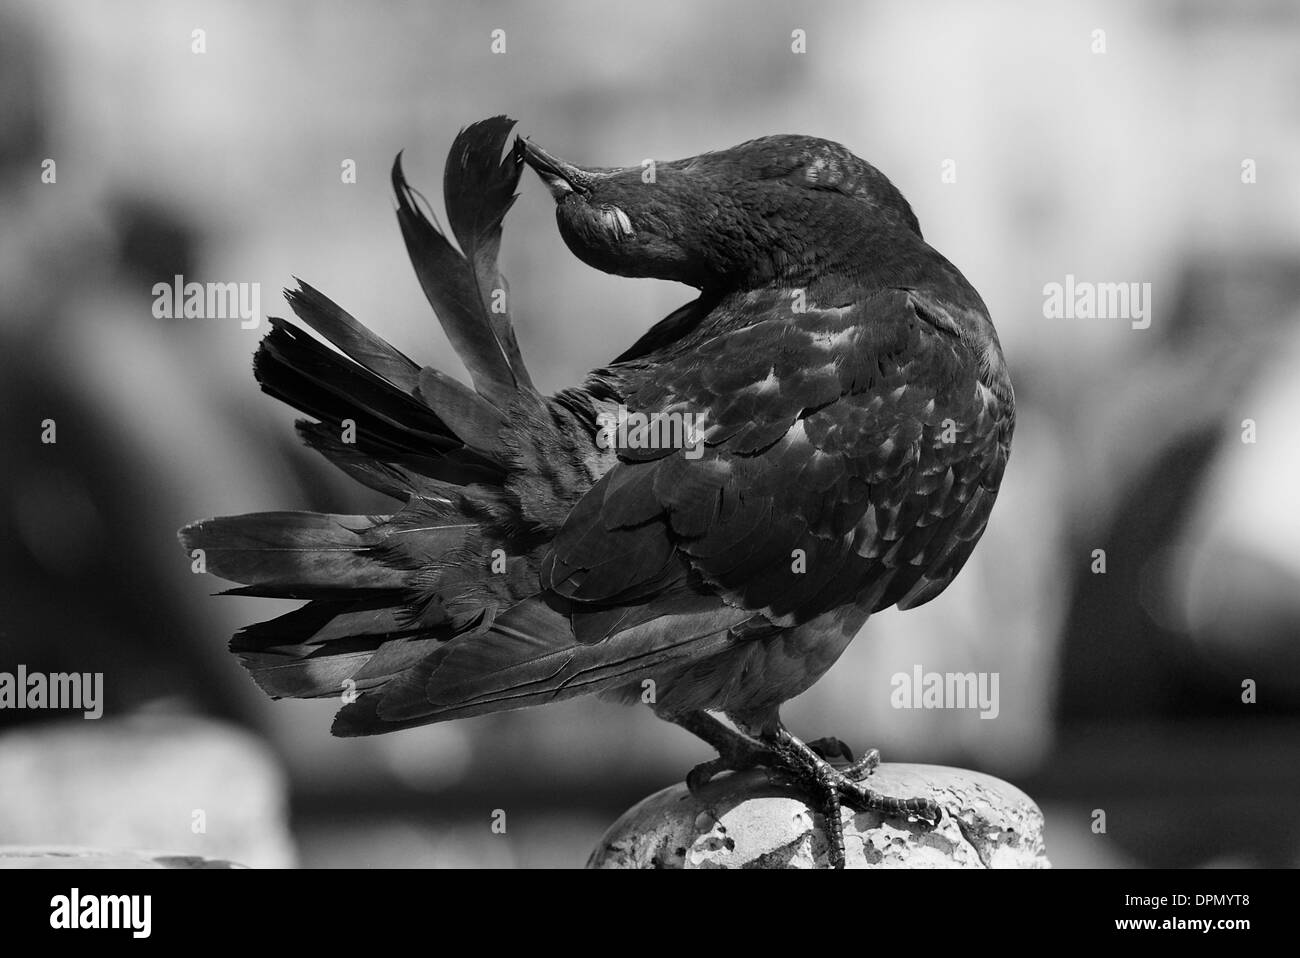 Artistic black and white photo of a pigeon in san marco square venice